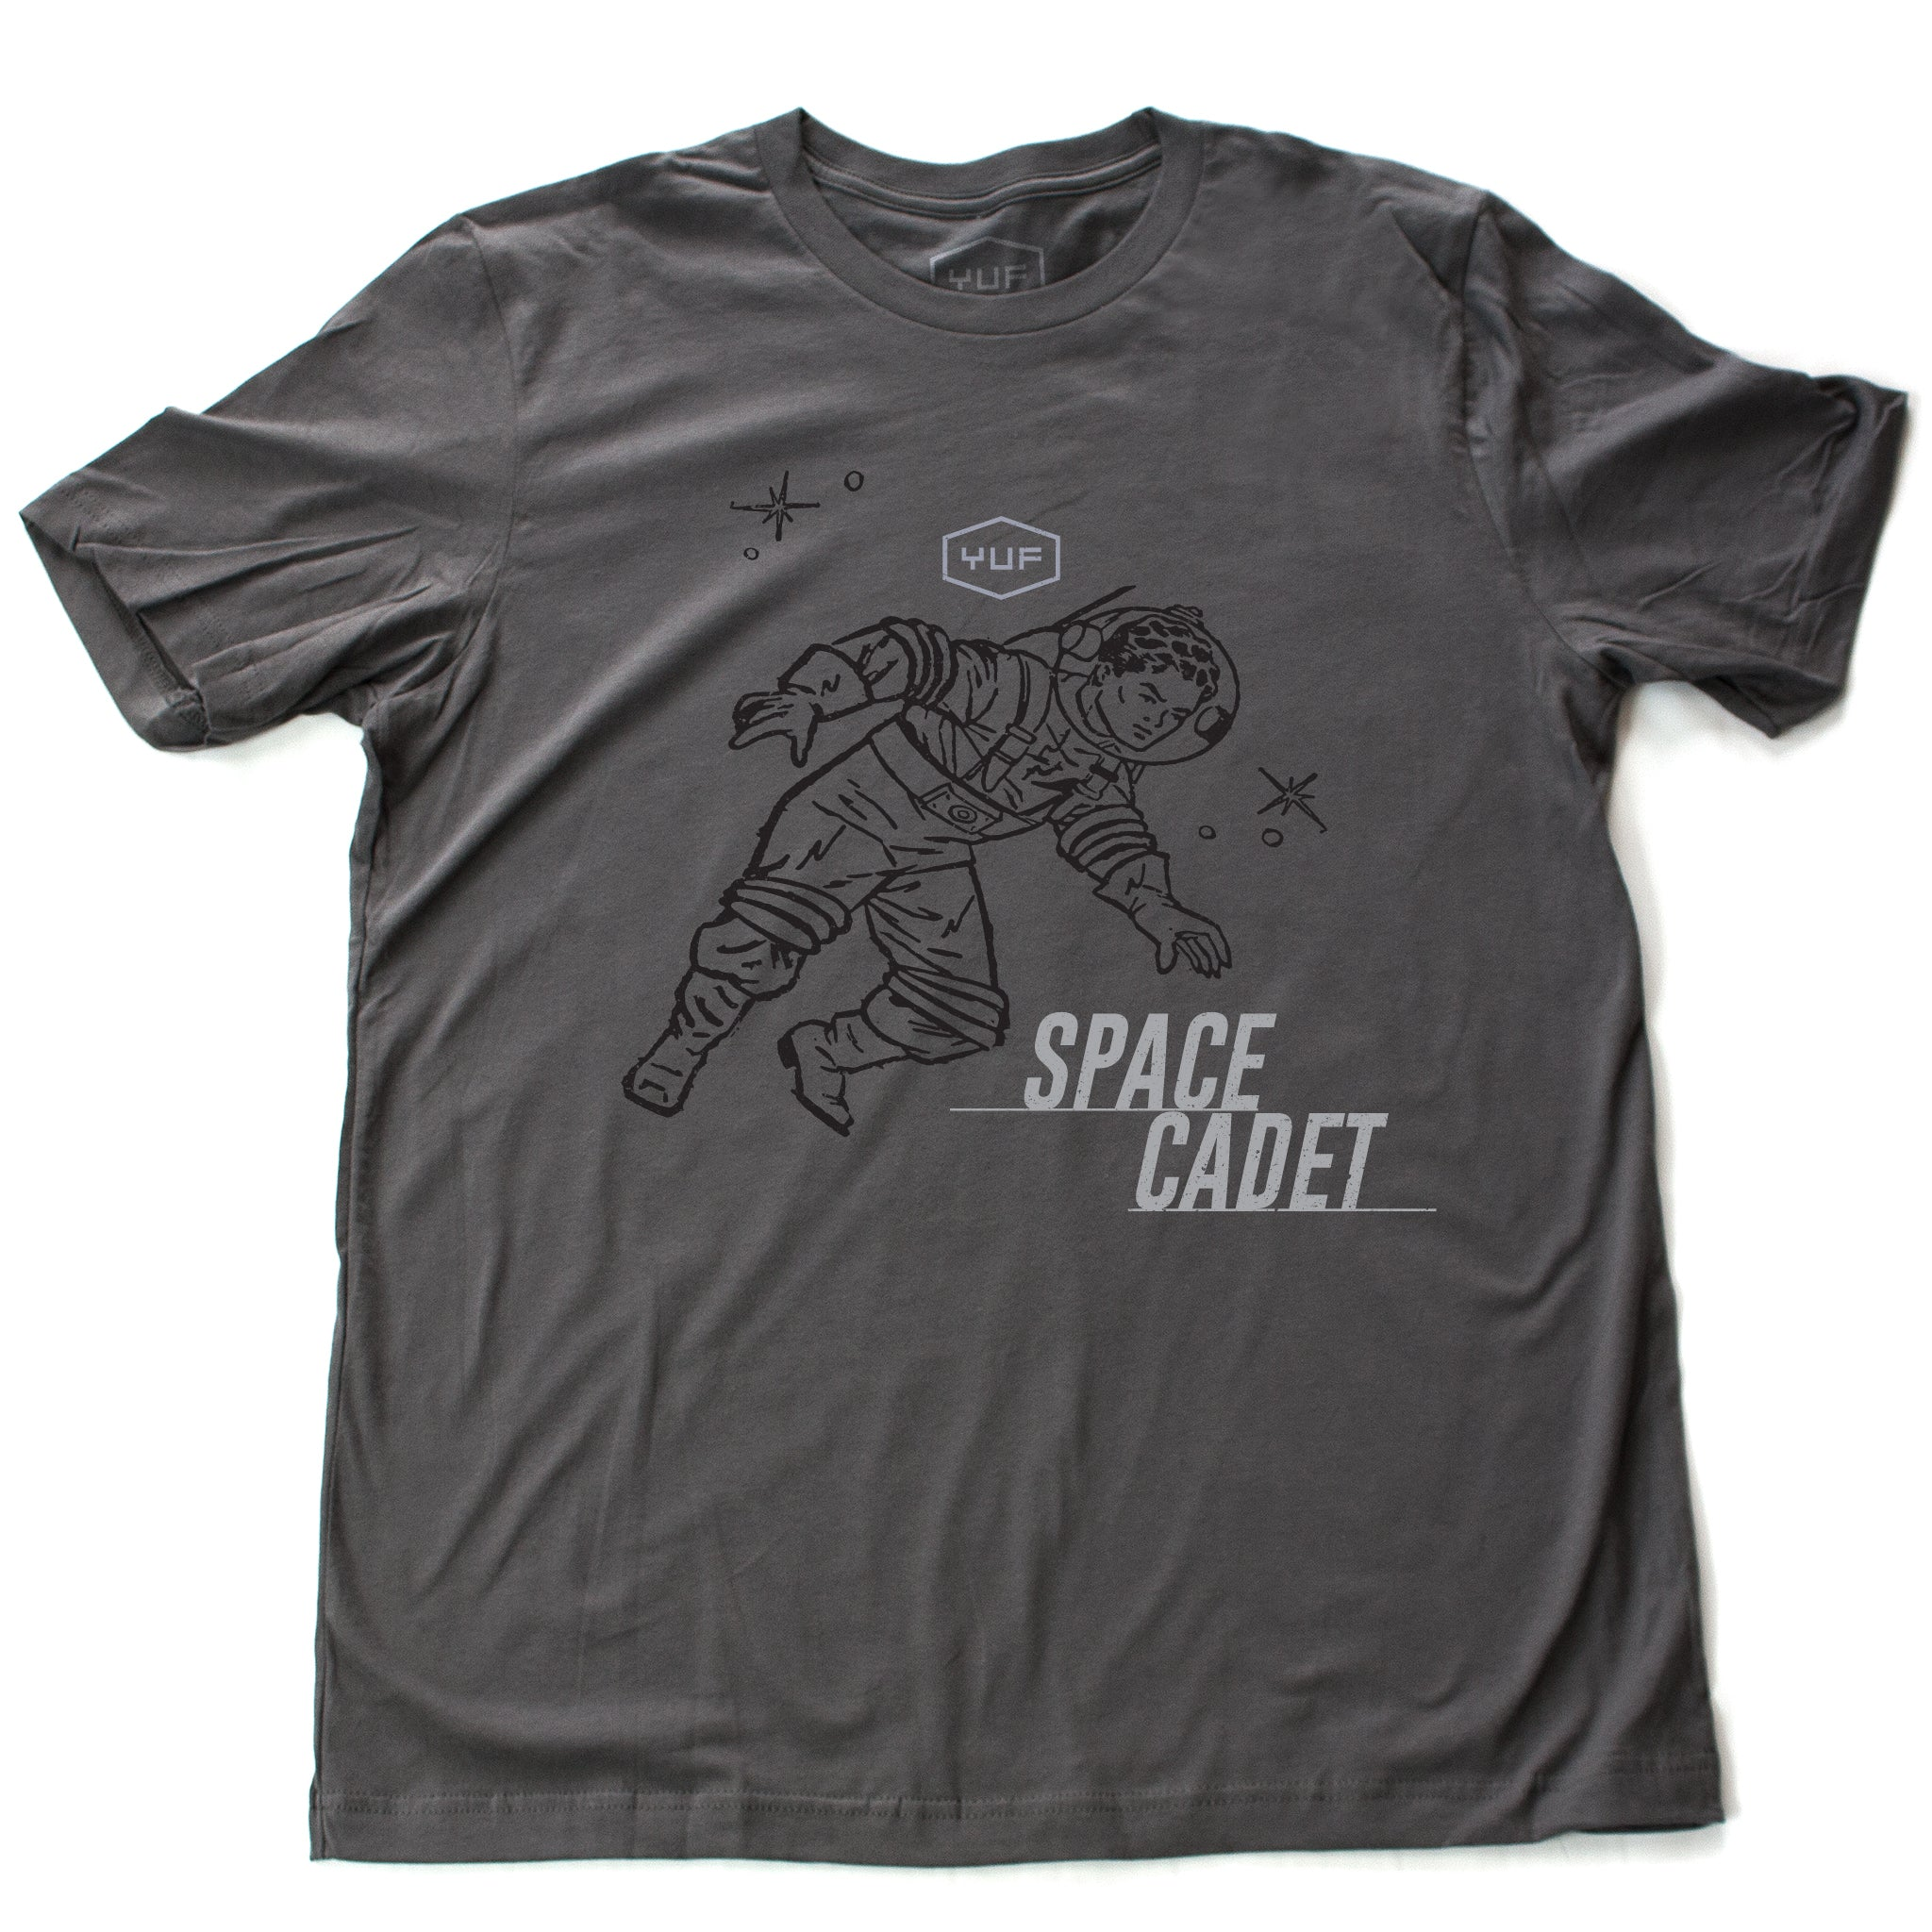 "A sarcastic, self-deprecating vintage-inspired, retro design fashion t-shirt in Asphalt Gray, featuring an astronaut or spaceman, amid stars, and the word ""SPACE CADET."" By fashion brand YUF, for wolfsaint.net"